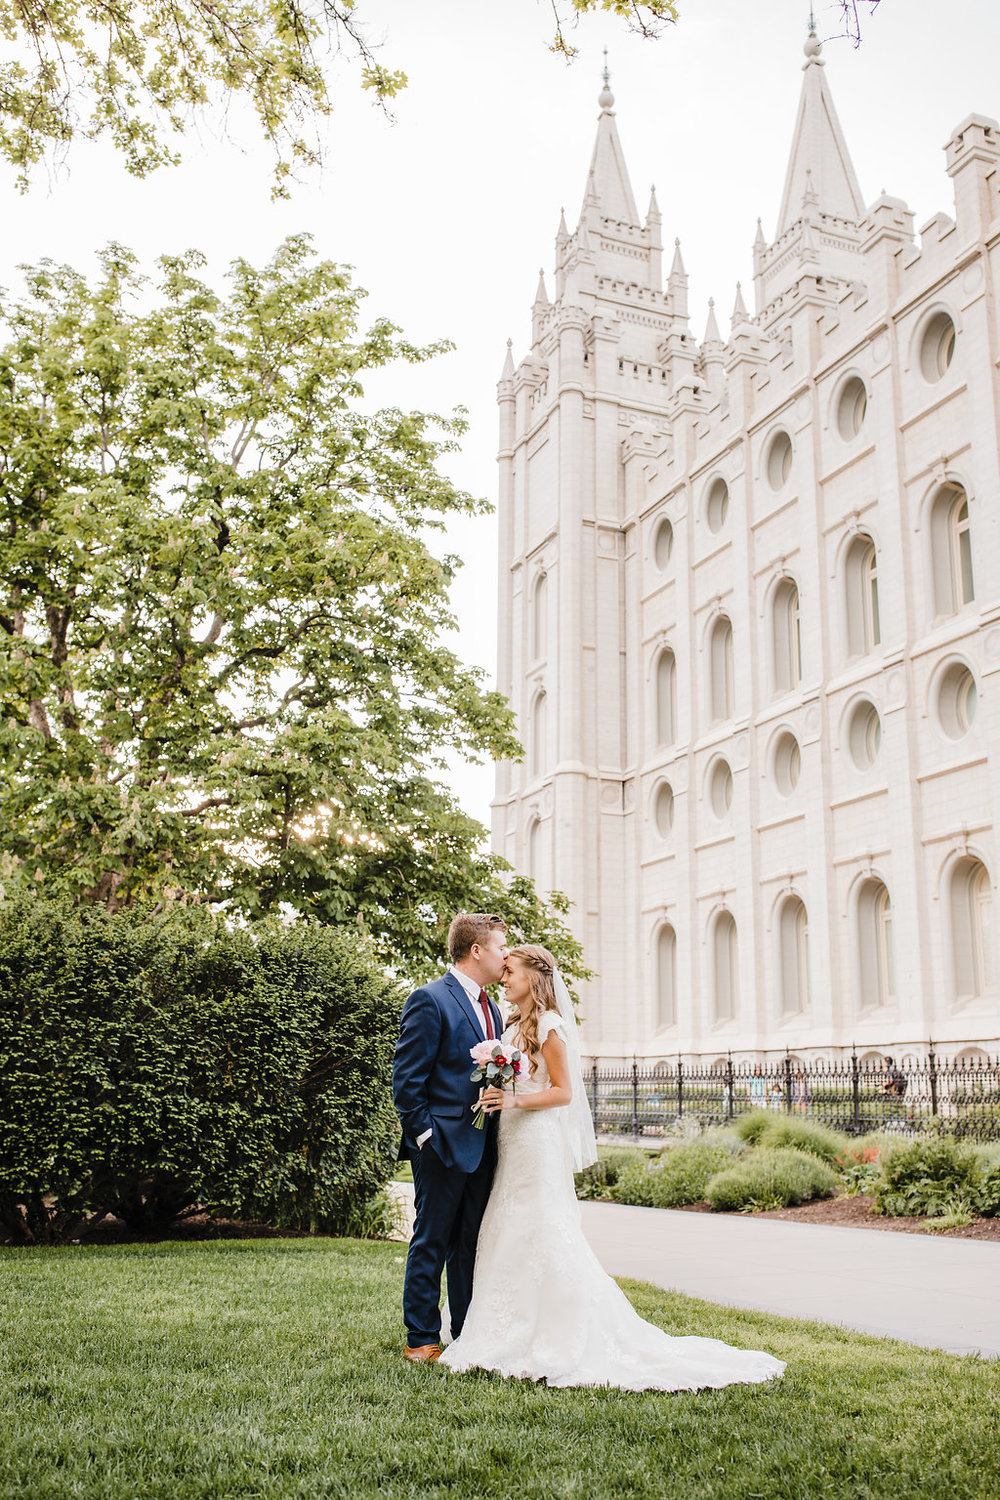 professional wedding photographer in salt lake city utah photo shoot on the lds temple grounds in northern utah calli richards